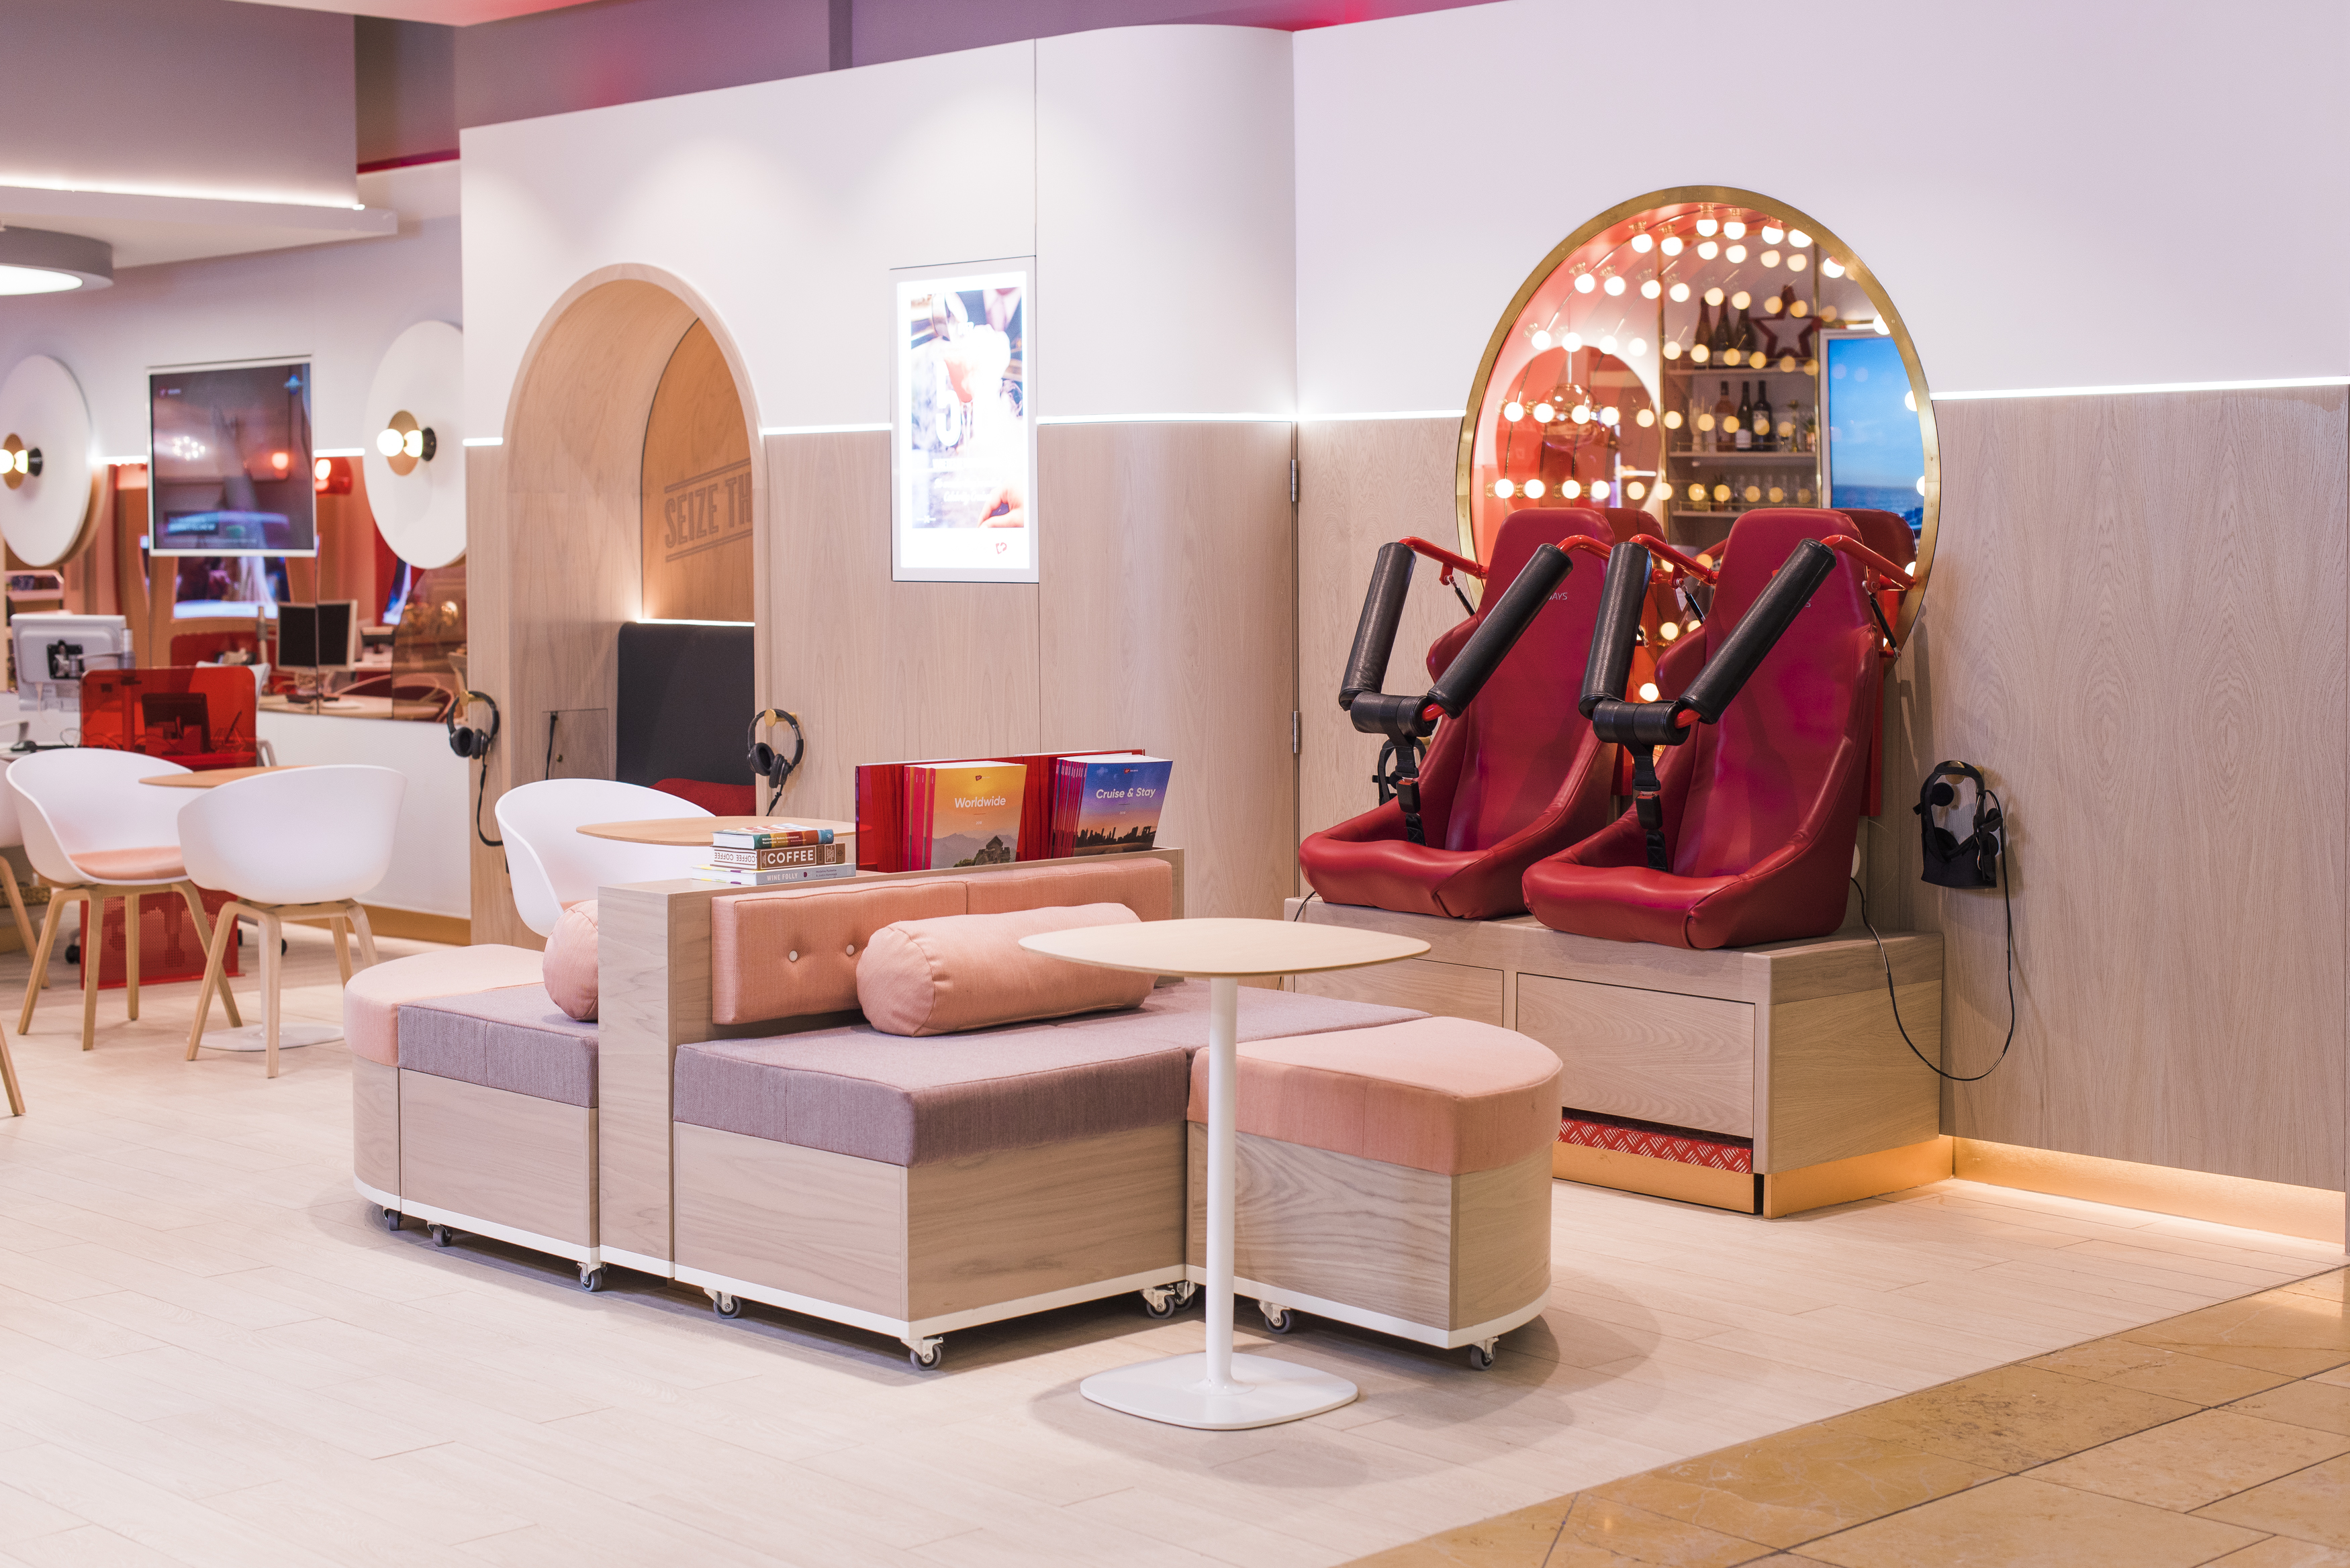 Virgin Holidays Retail Interior